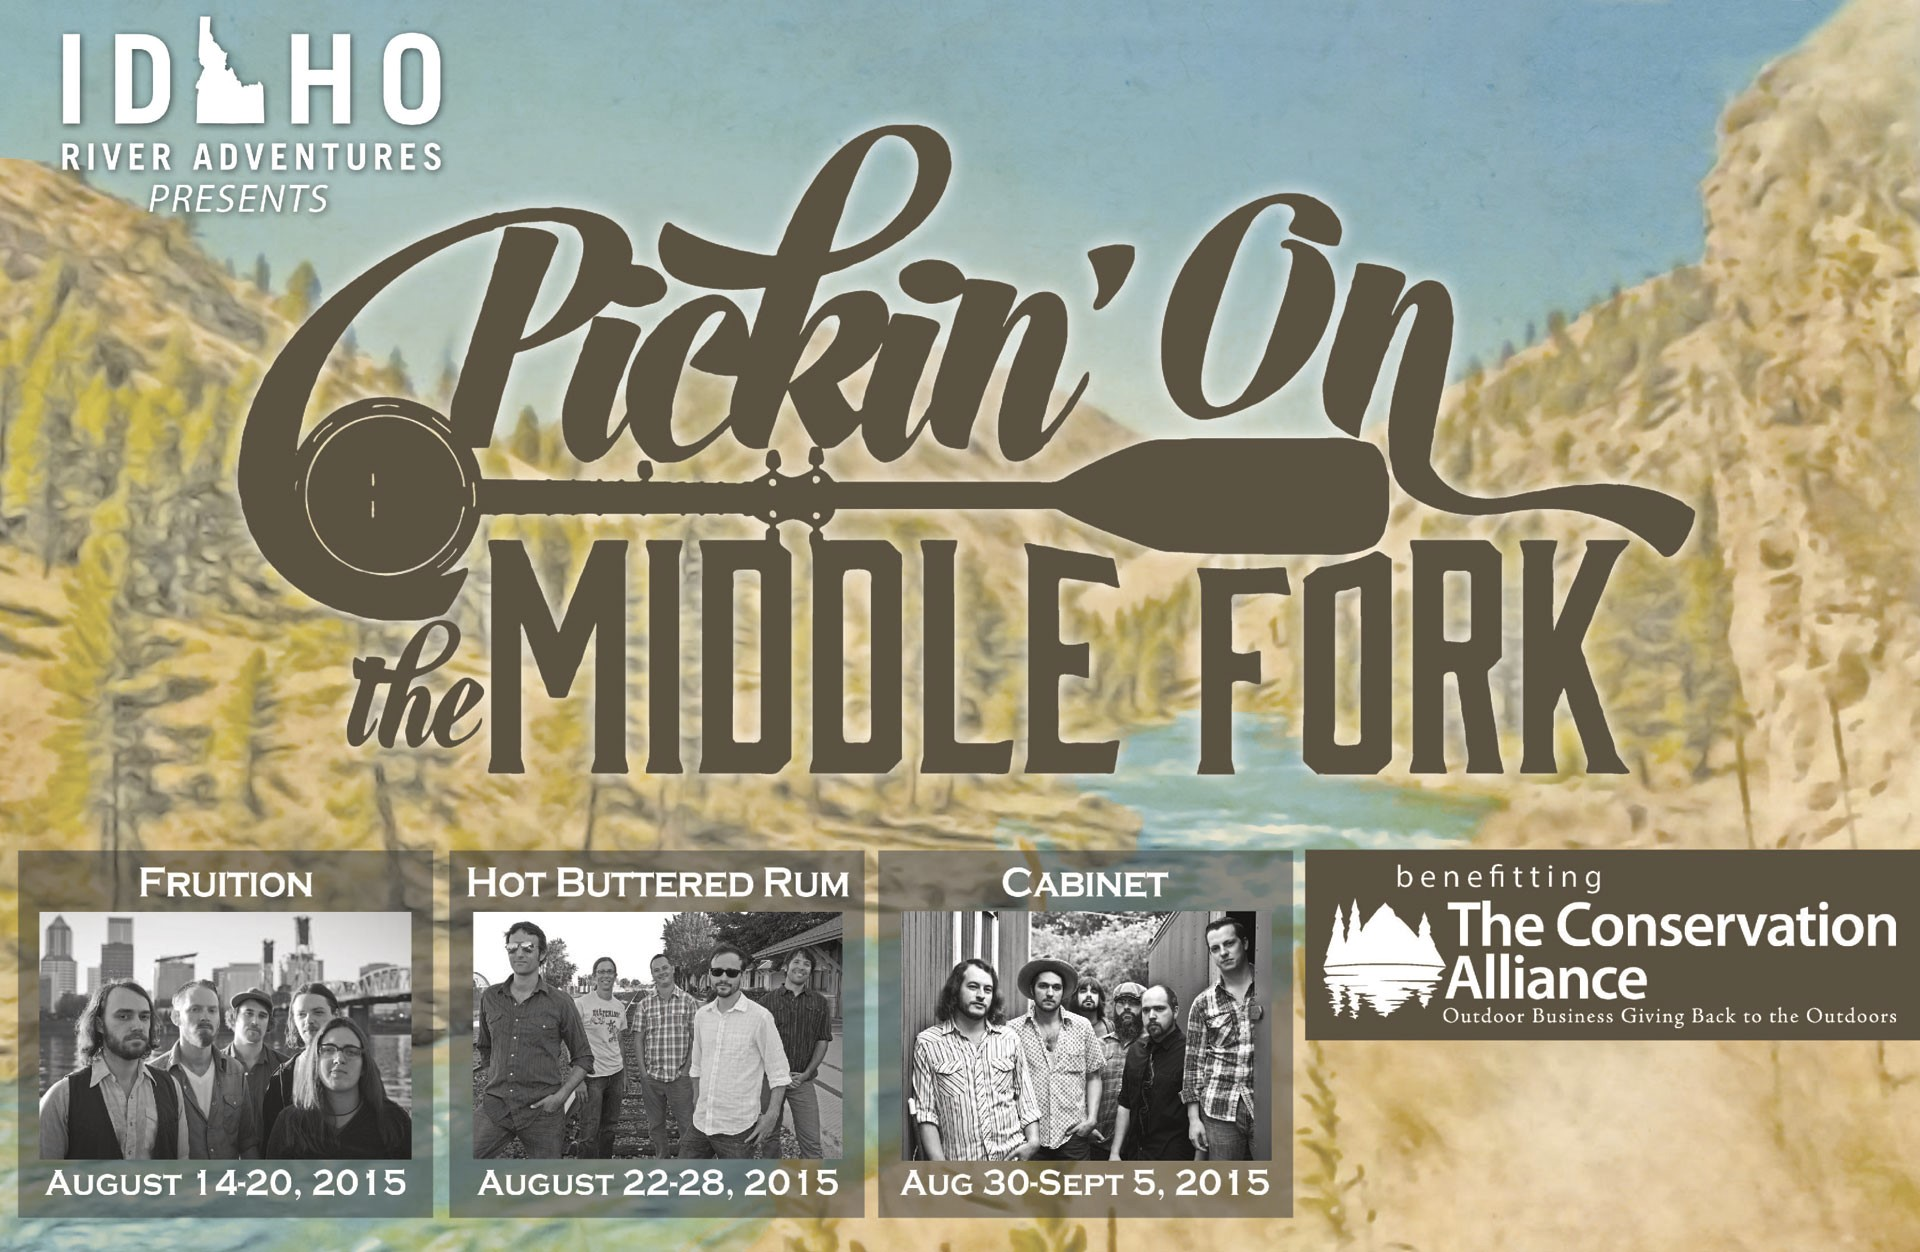 Pickin on the Middle Fork